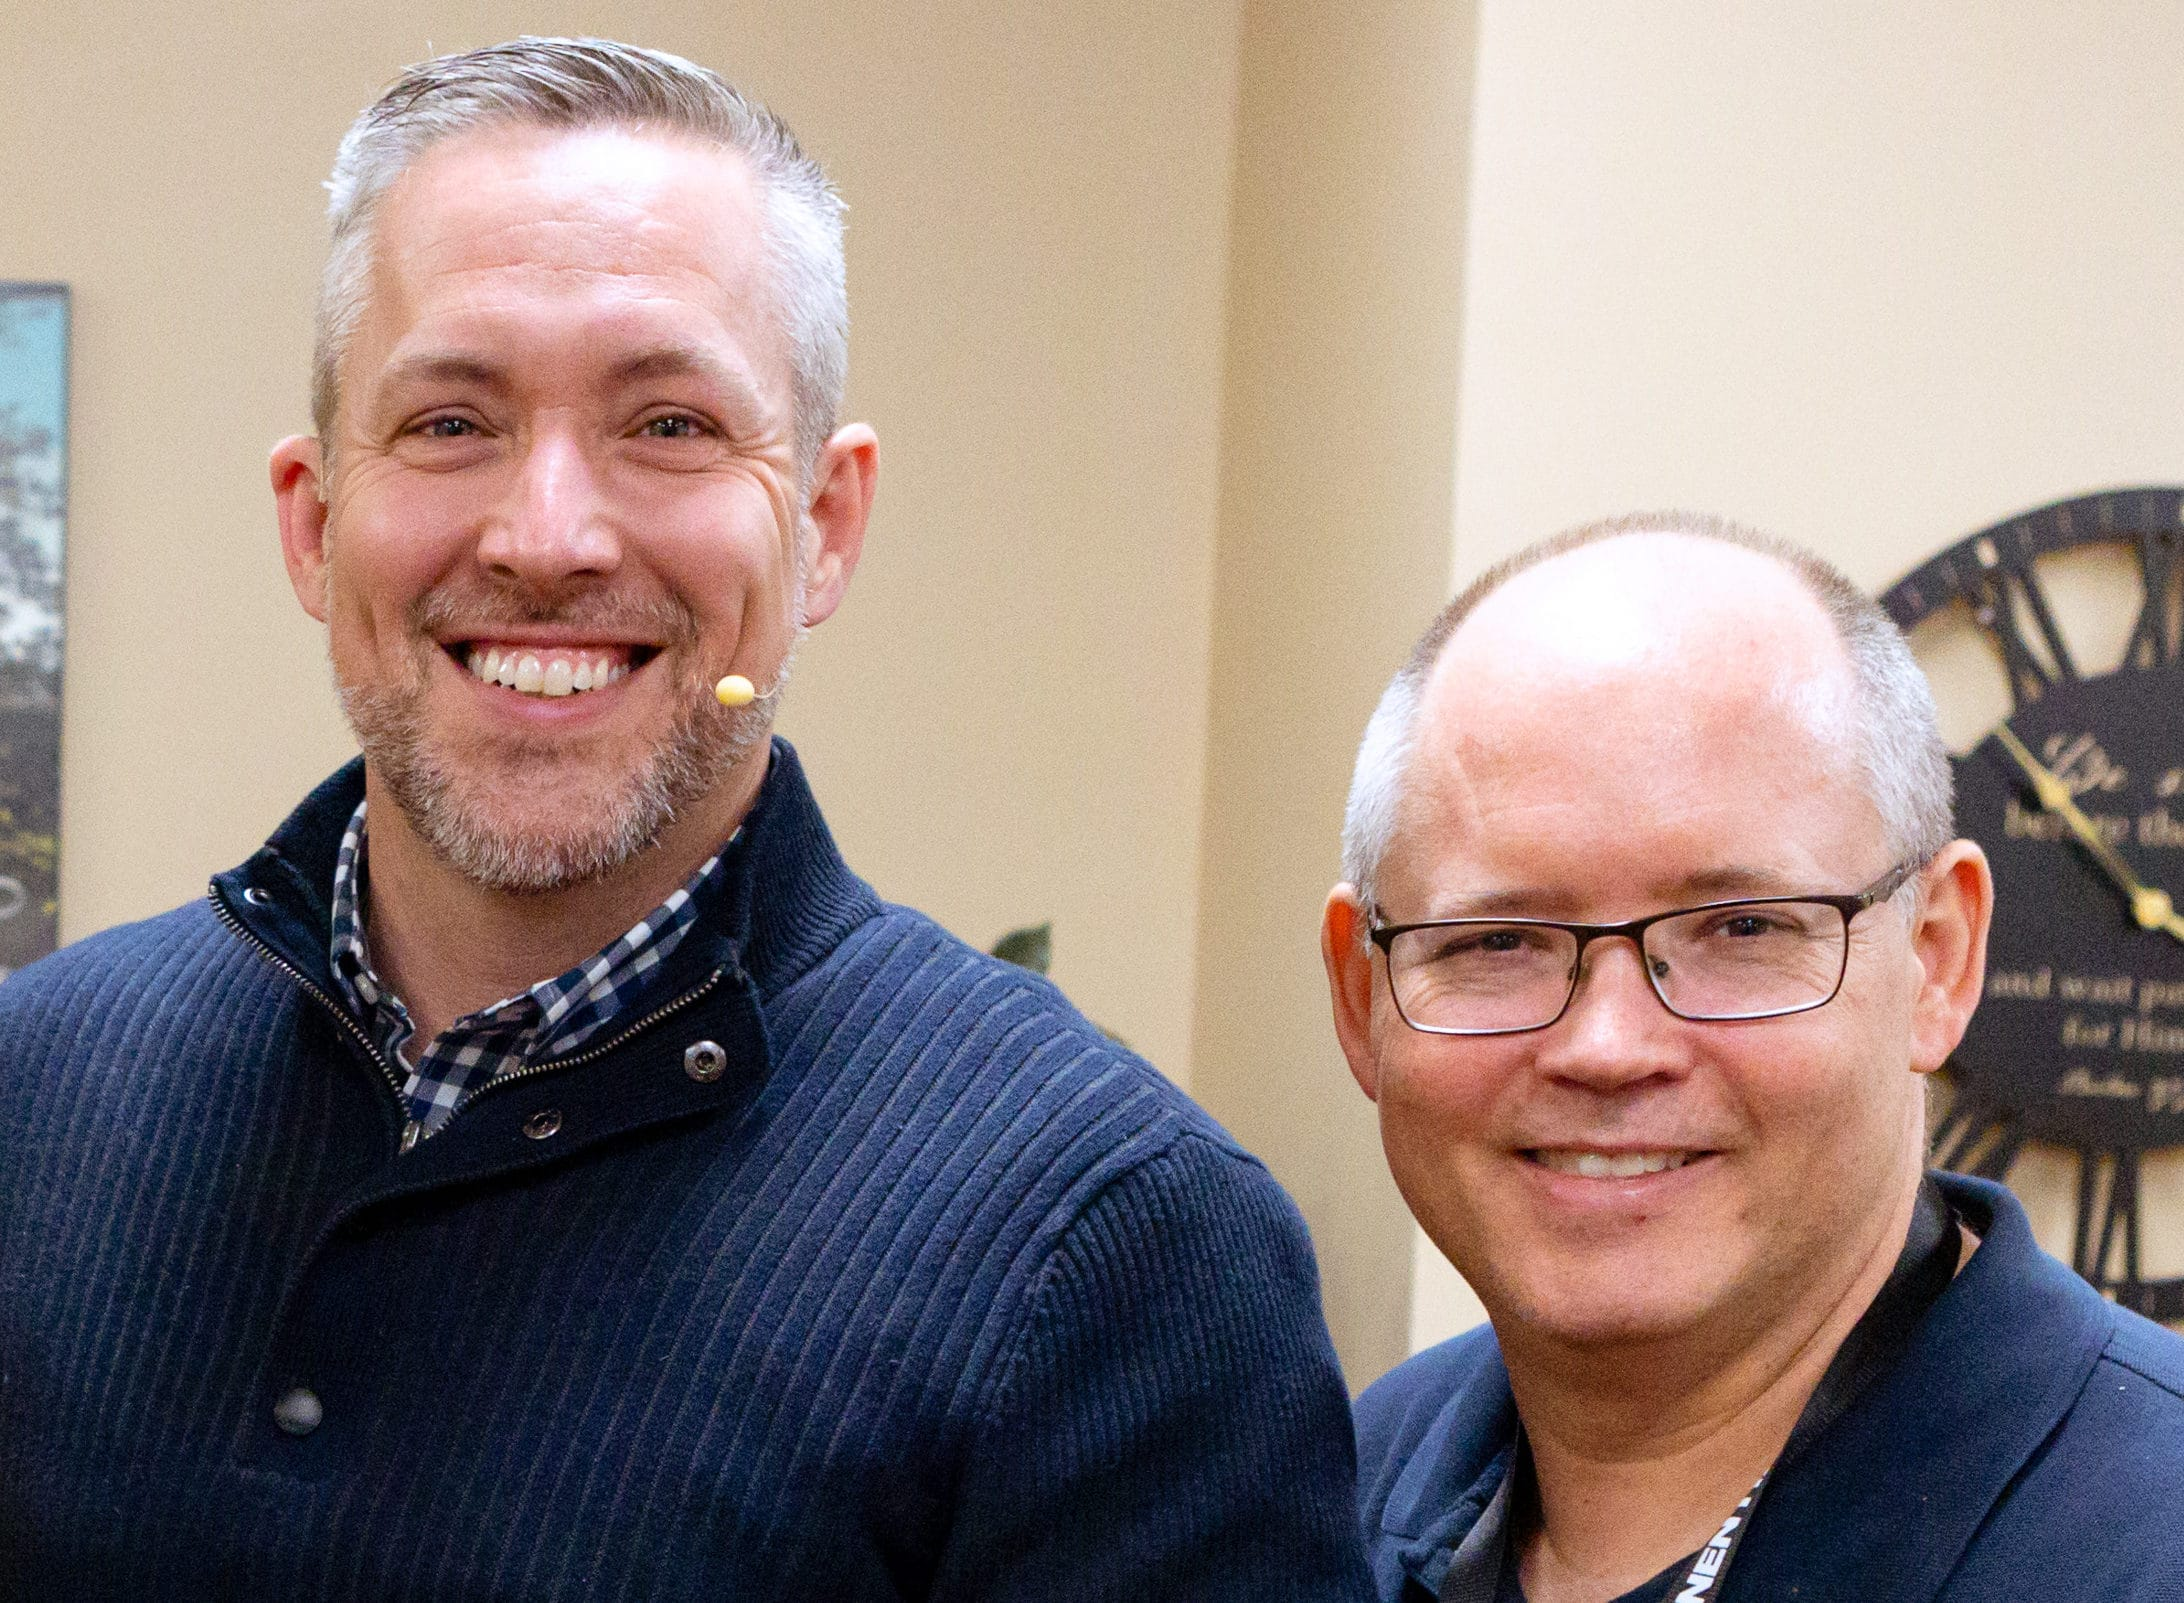 CNLP 287: J.D. Greear and Todd Wilson on Why The Future Church Is a Multiplying Church, How to Overcome a Scarcity Mindset and How to Start Reproducing Leadership